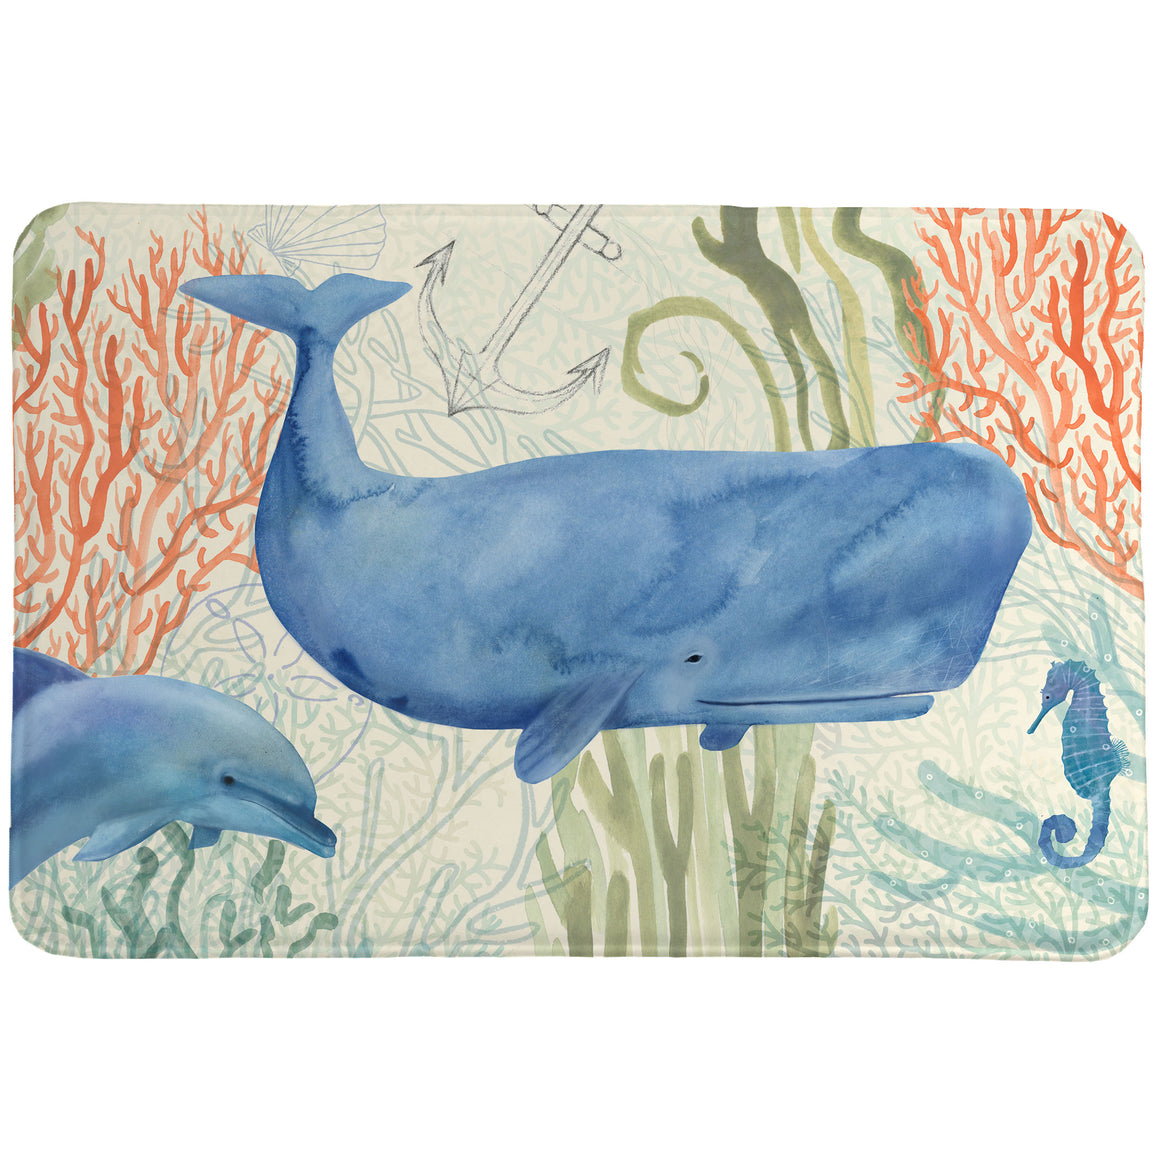 "The ""Ocean Whimsy Memory Foam Rug"" features a whale and dolphins in an serene, underwater setting. The soft watercolor hand of this coastal motif creates an energy sure to bring relaxation to your bathroom decor!"